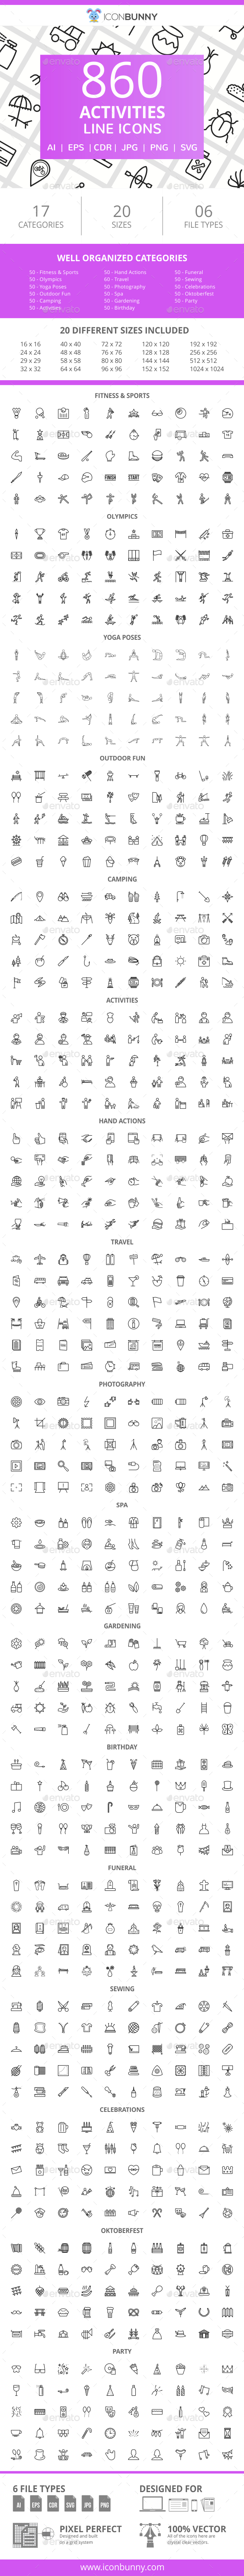 GraphicRiver 860 Activities Line Icons 21043658